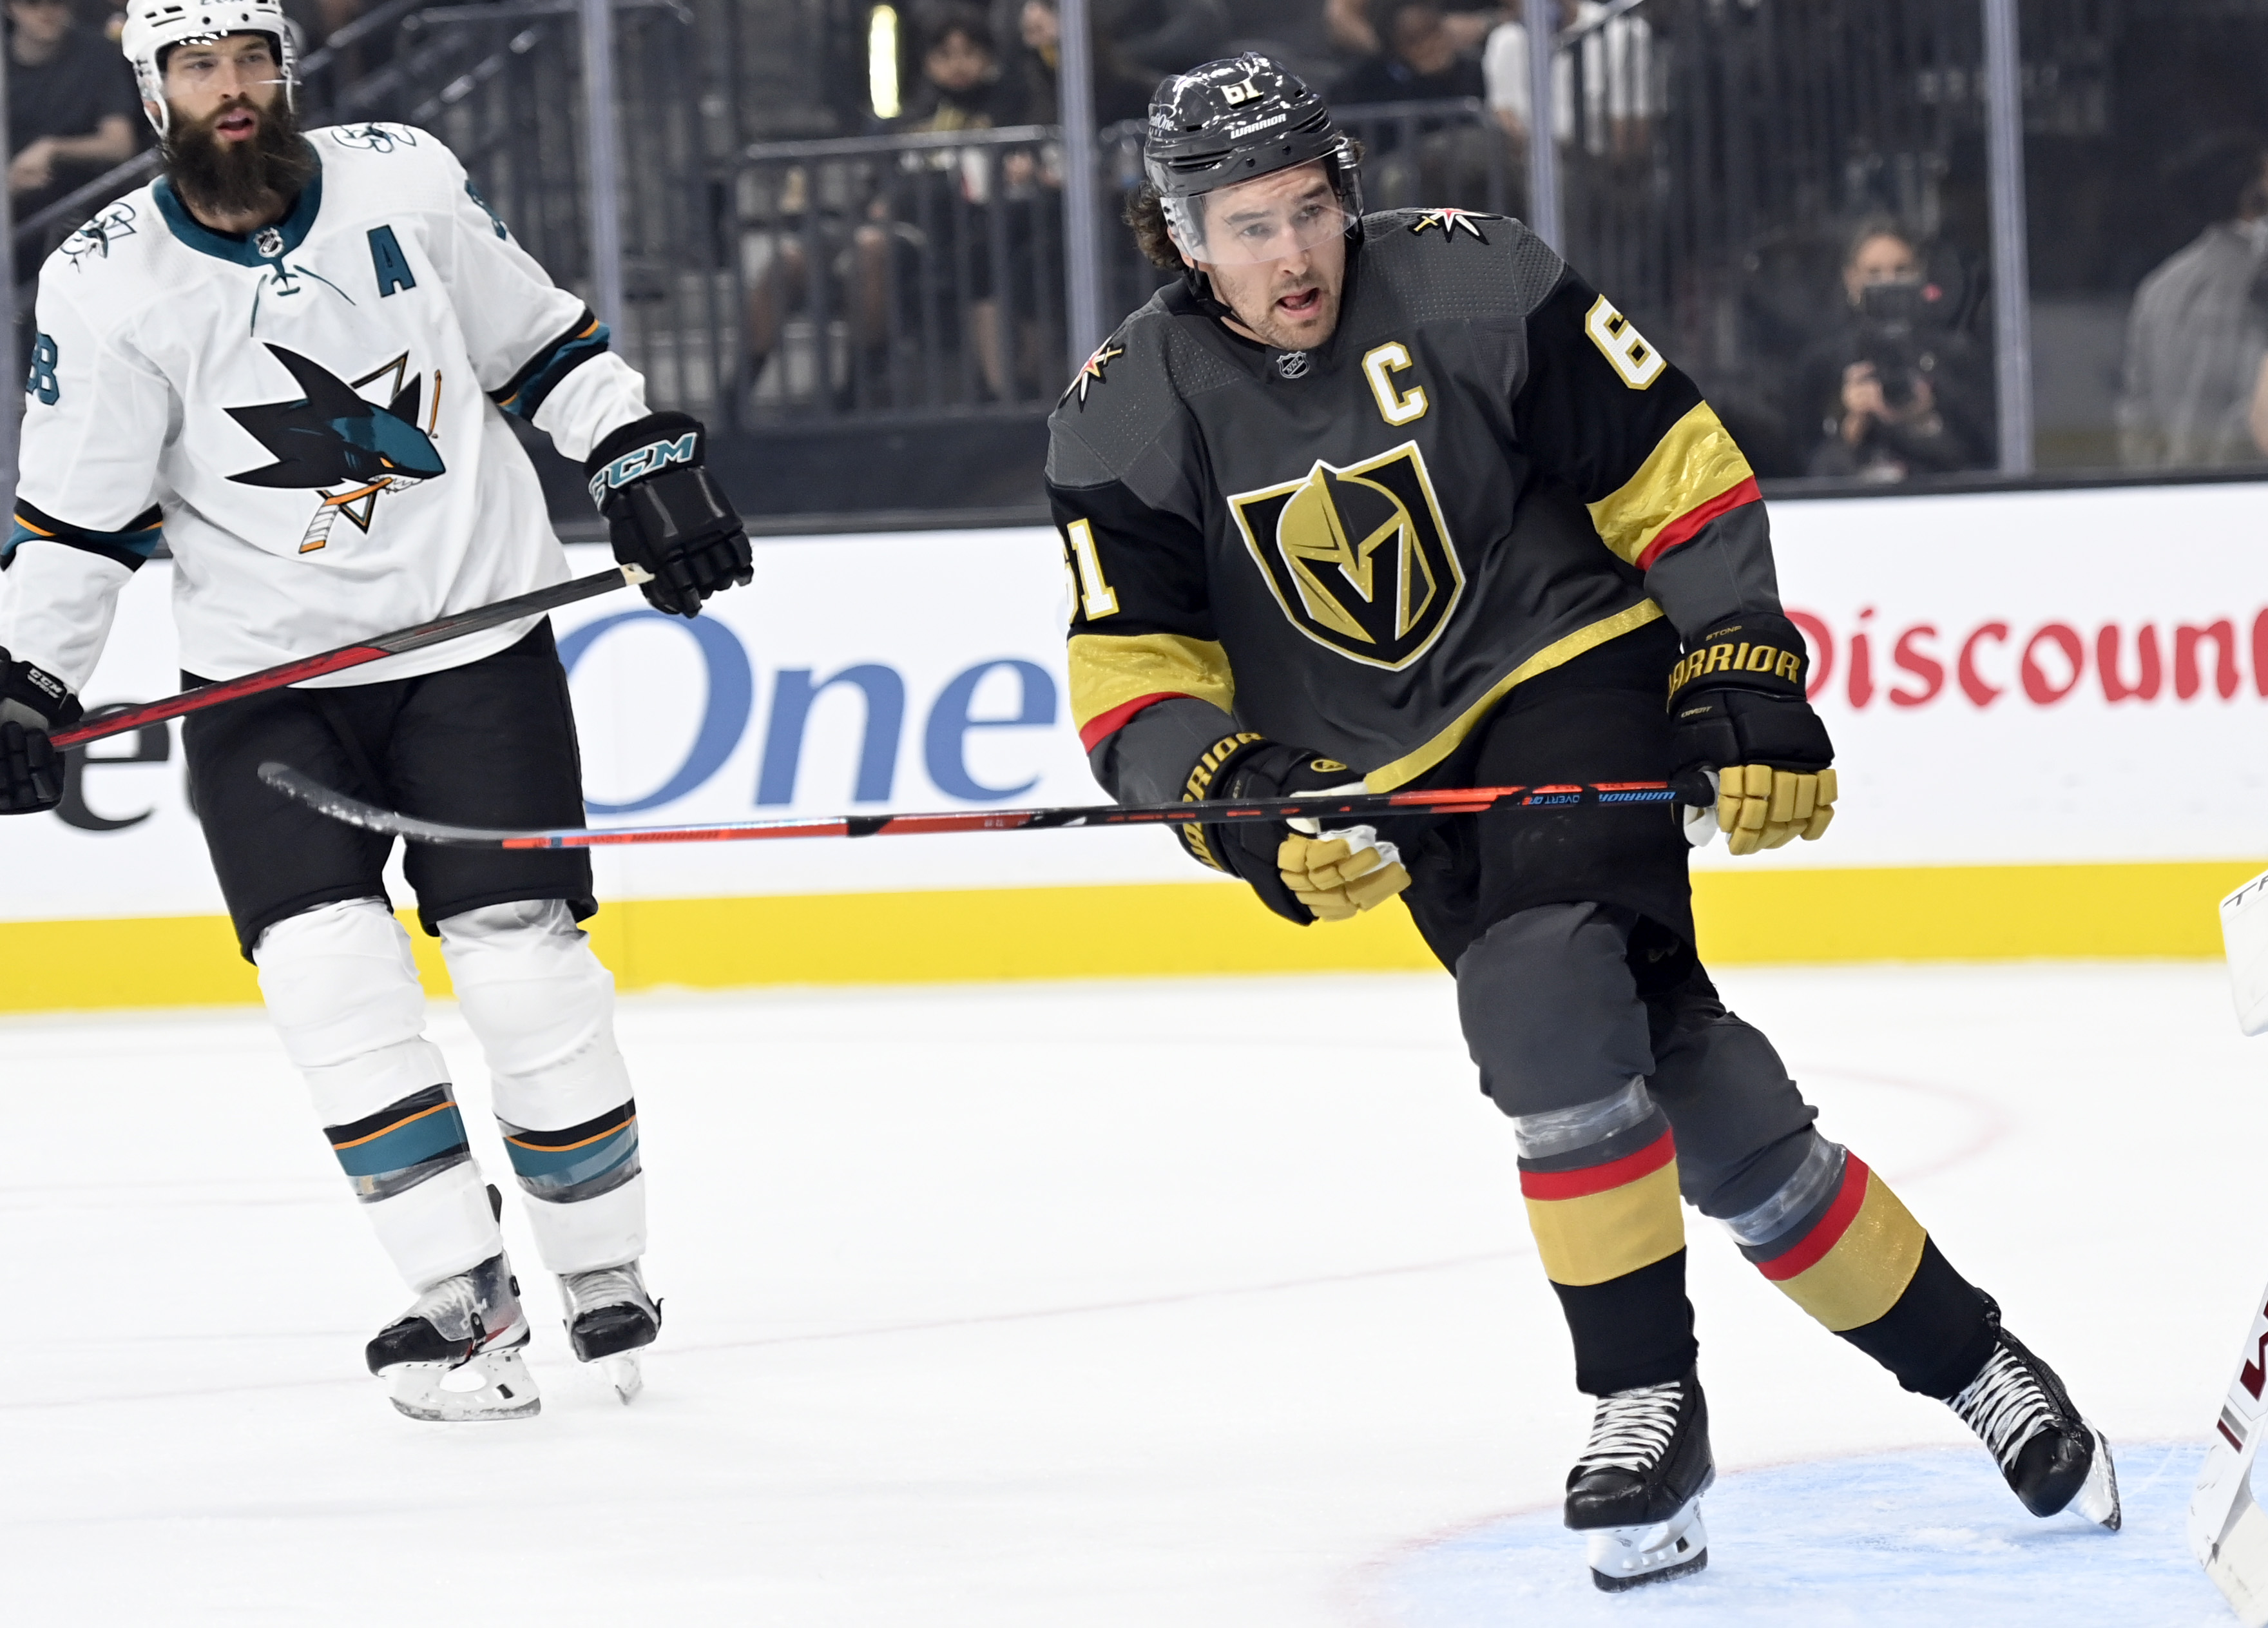 Mark Stone #61 of the Vegas Golden Knights skates during the first period against the San Jose Sharks at T-Mobile Arena on September 26, 2021 in Las Vegas, Nevada.